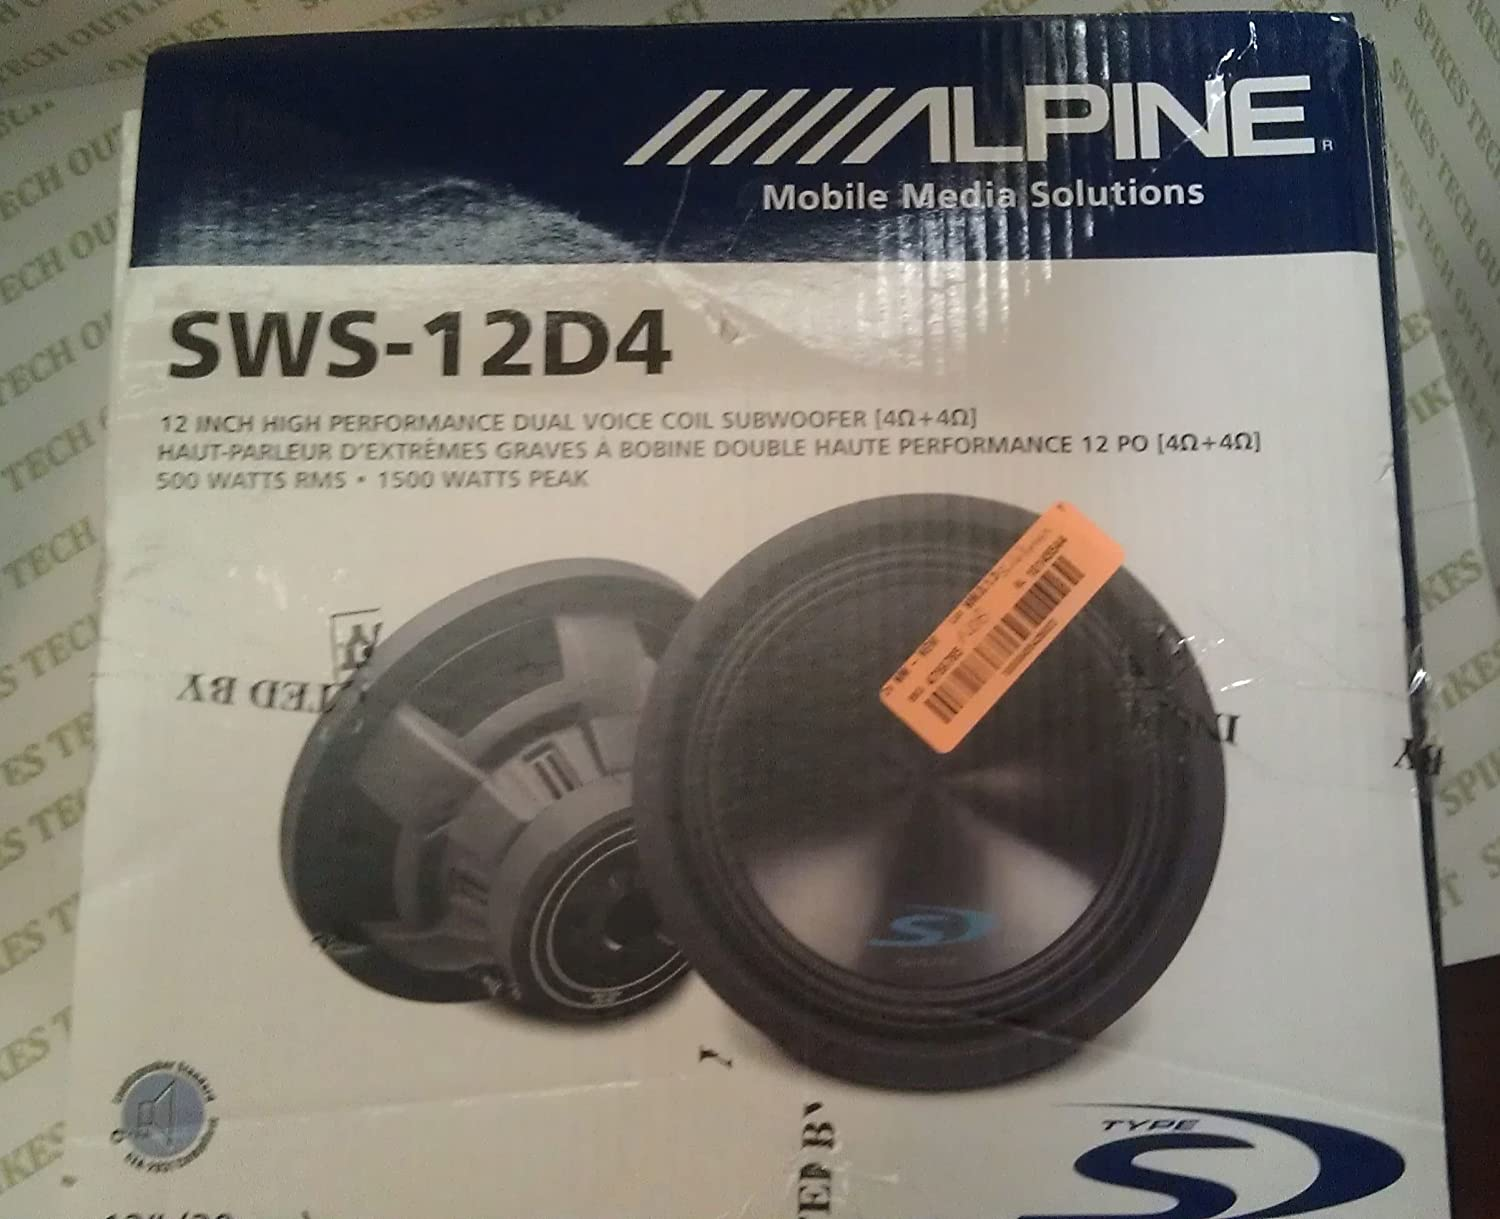 Alpine Type S Sws 12d4 12 Inch 1500 Watt Subwoofer With How To Wire Dual Voice Coil Sub Massive 4 Ohm Coils Fourth Generation More Bass In Less Space Sports